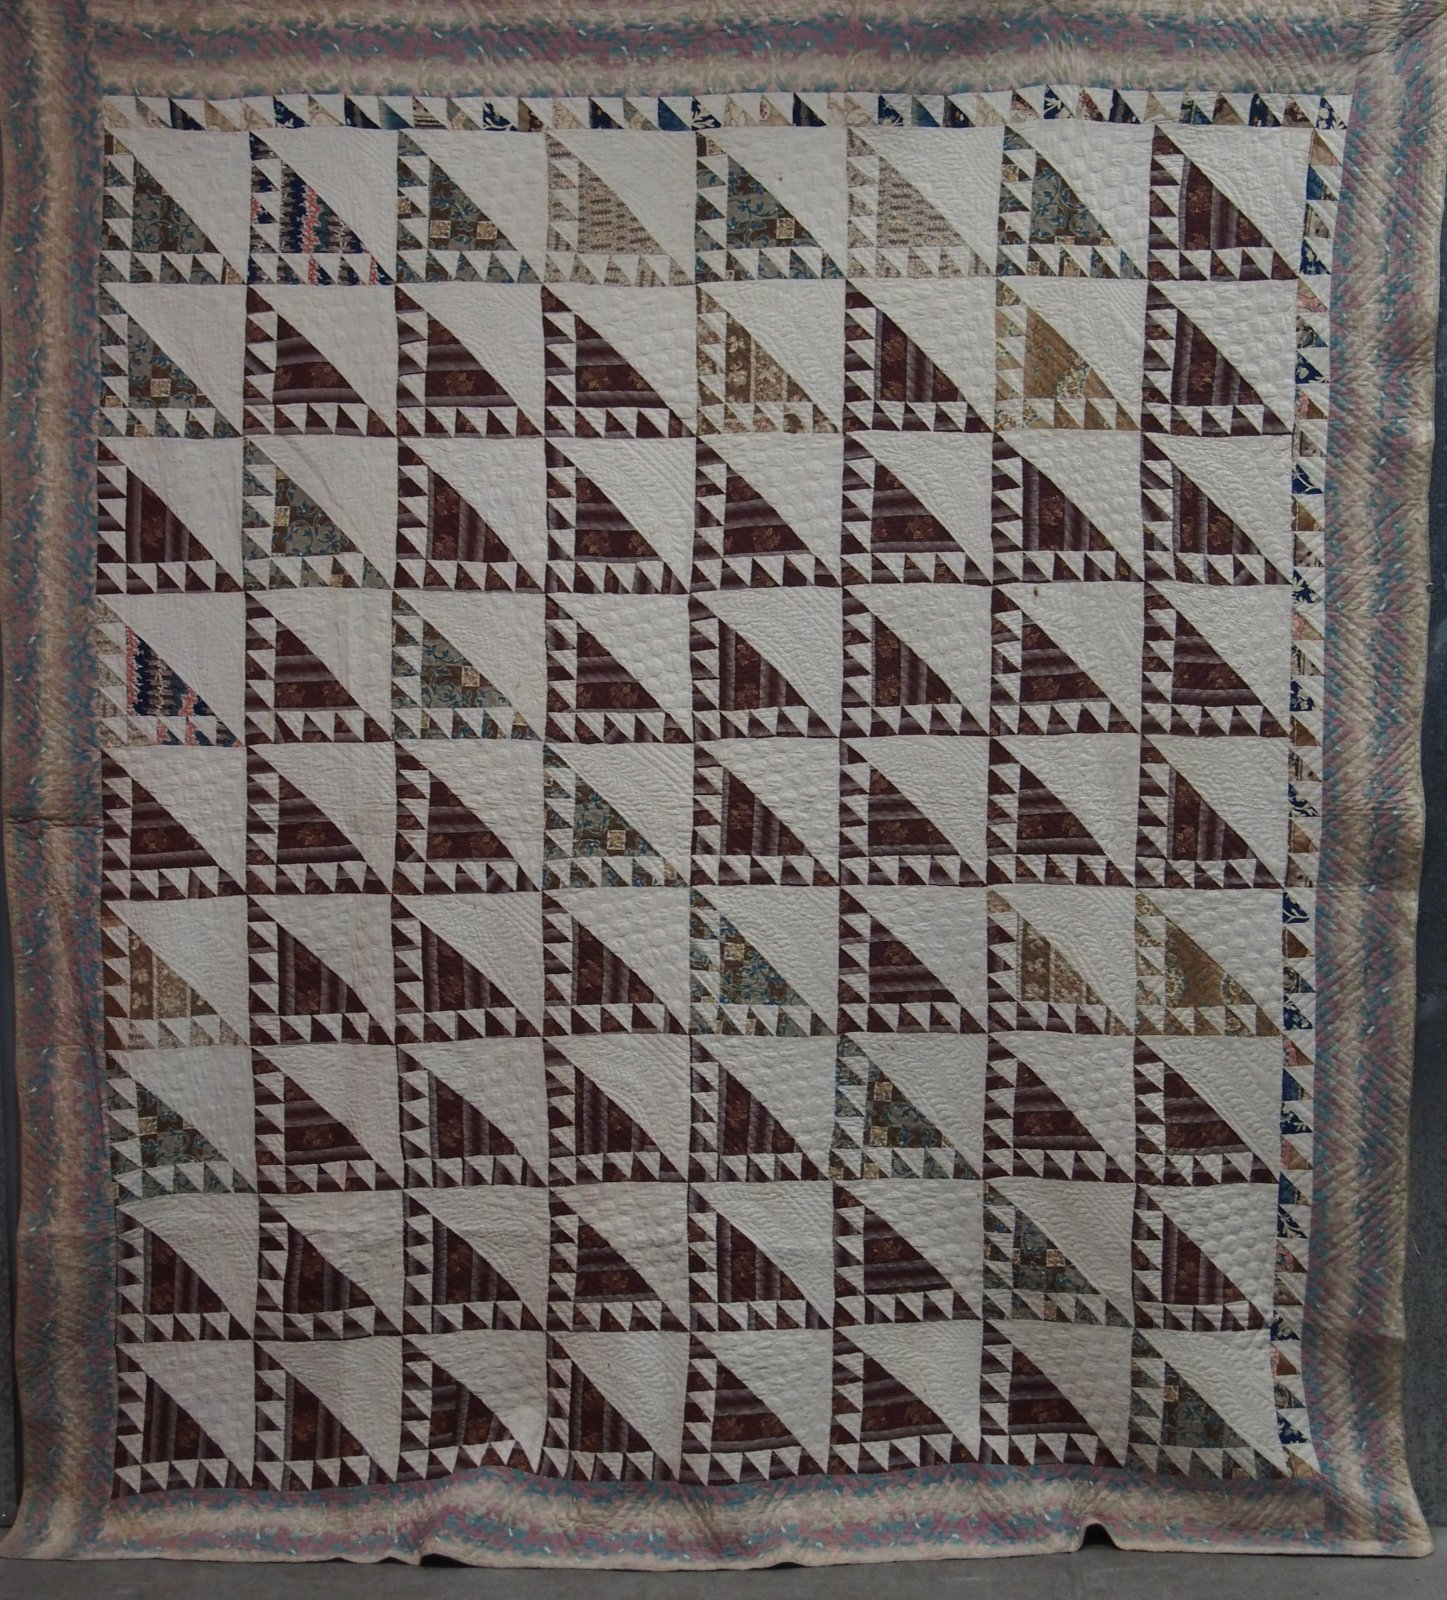 LADY OF THE LAKE OMBRED CHINTZ ANTIQUE QUILT